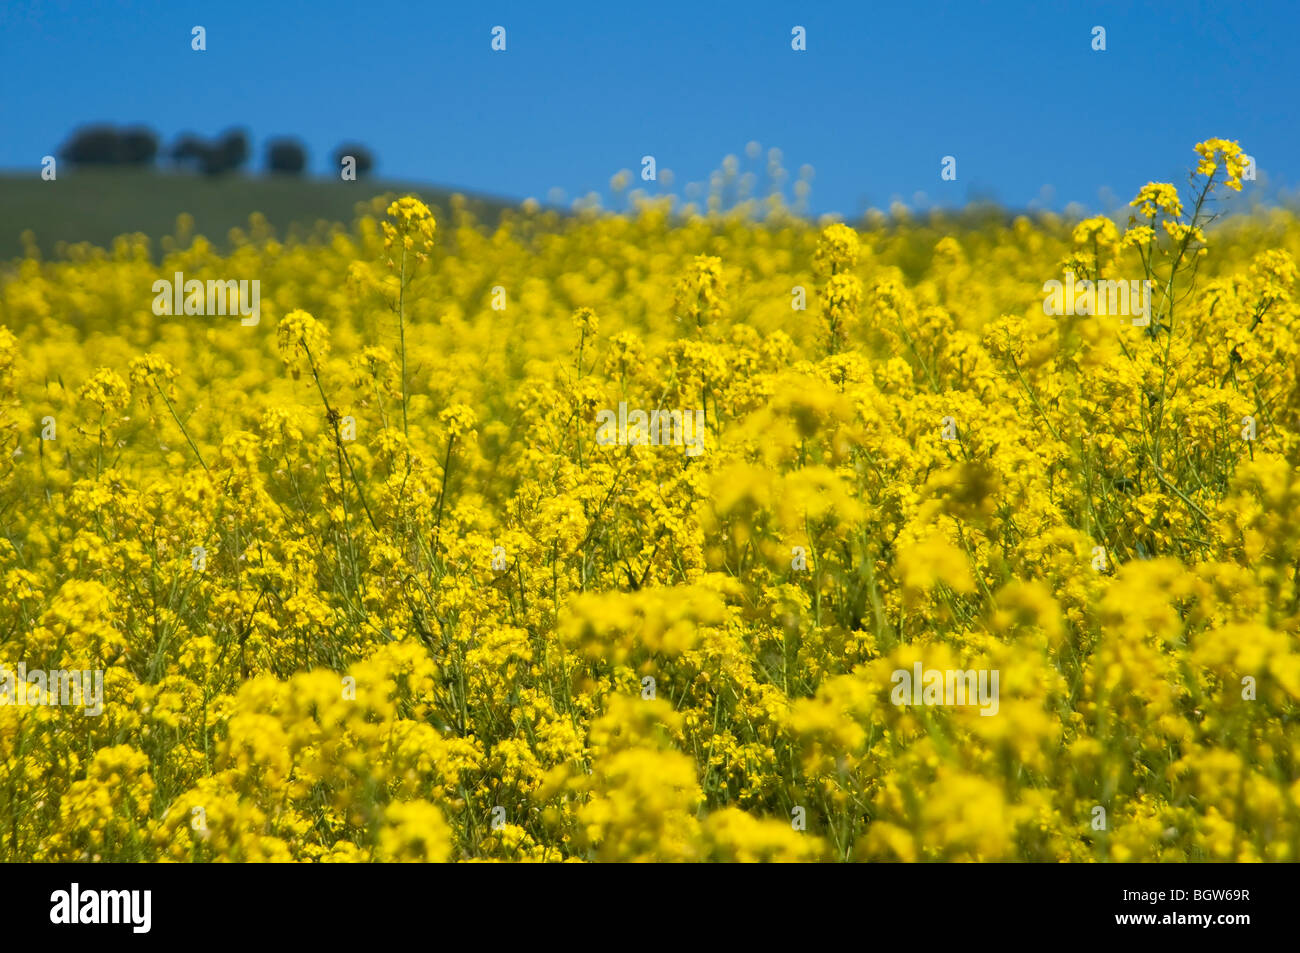 A field of yellow mustard flowers in wine country near napa valley a field of yellow mustard flowers in wine country near napa valley in california mightylinksfo